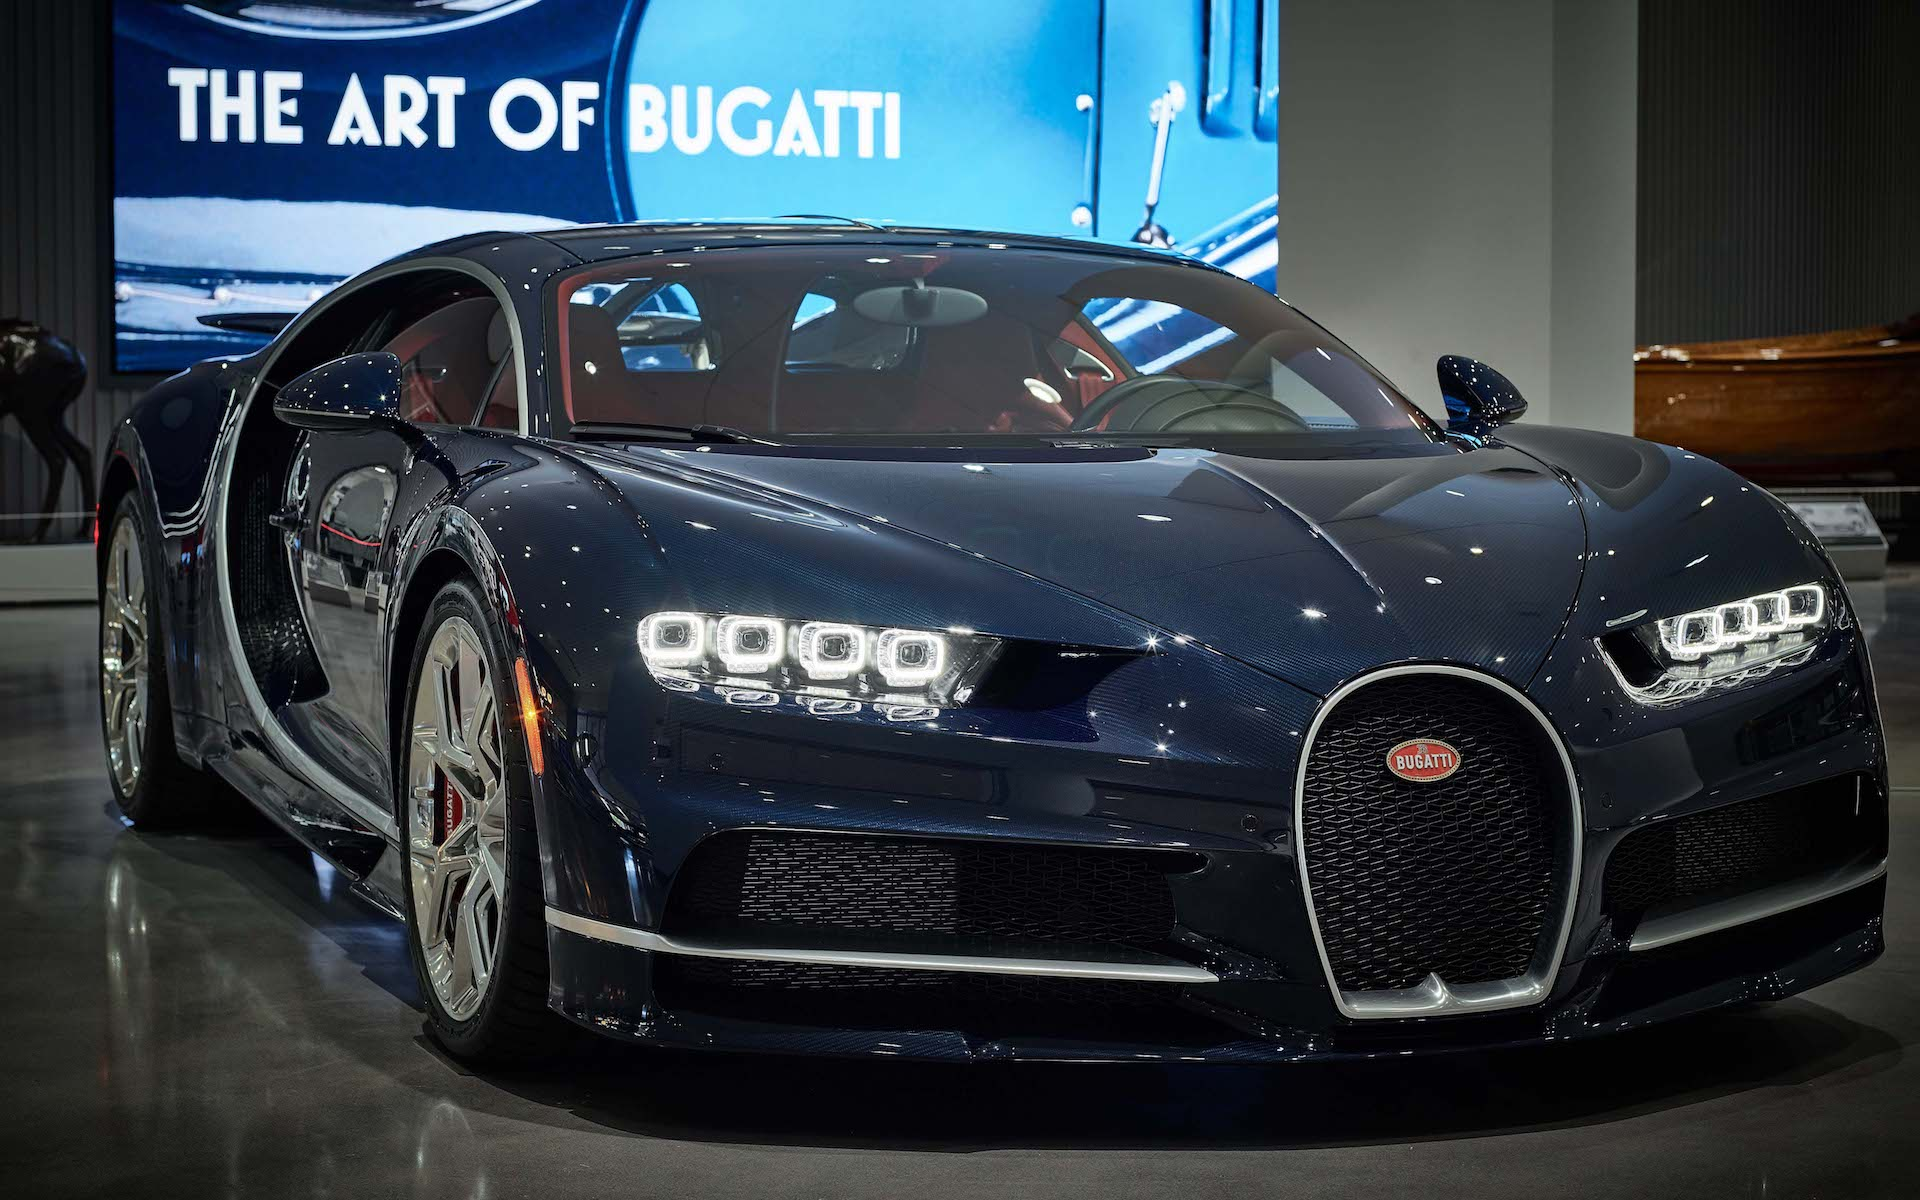 See the work of the Bugatti family at the Petersen Museum